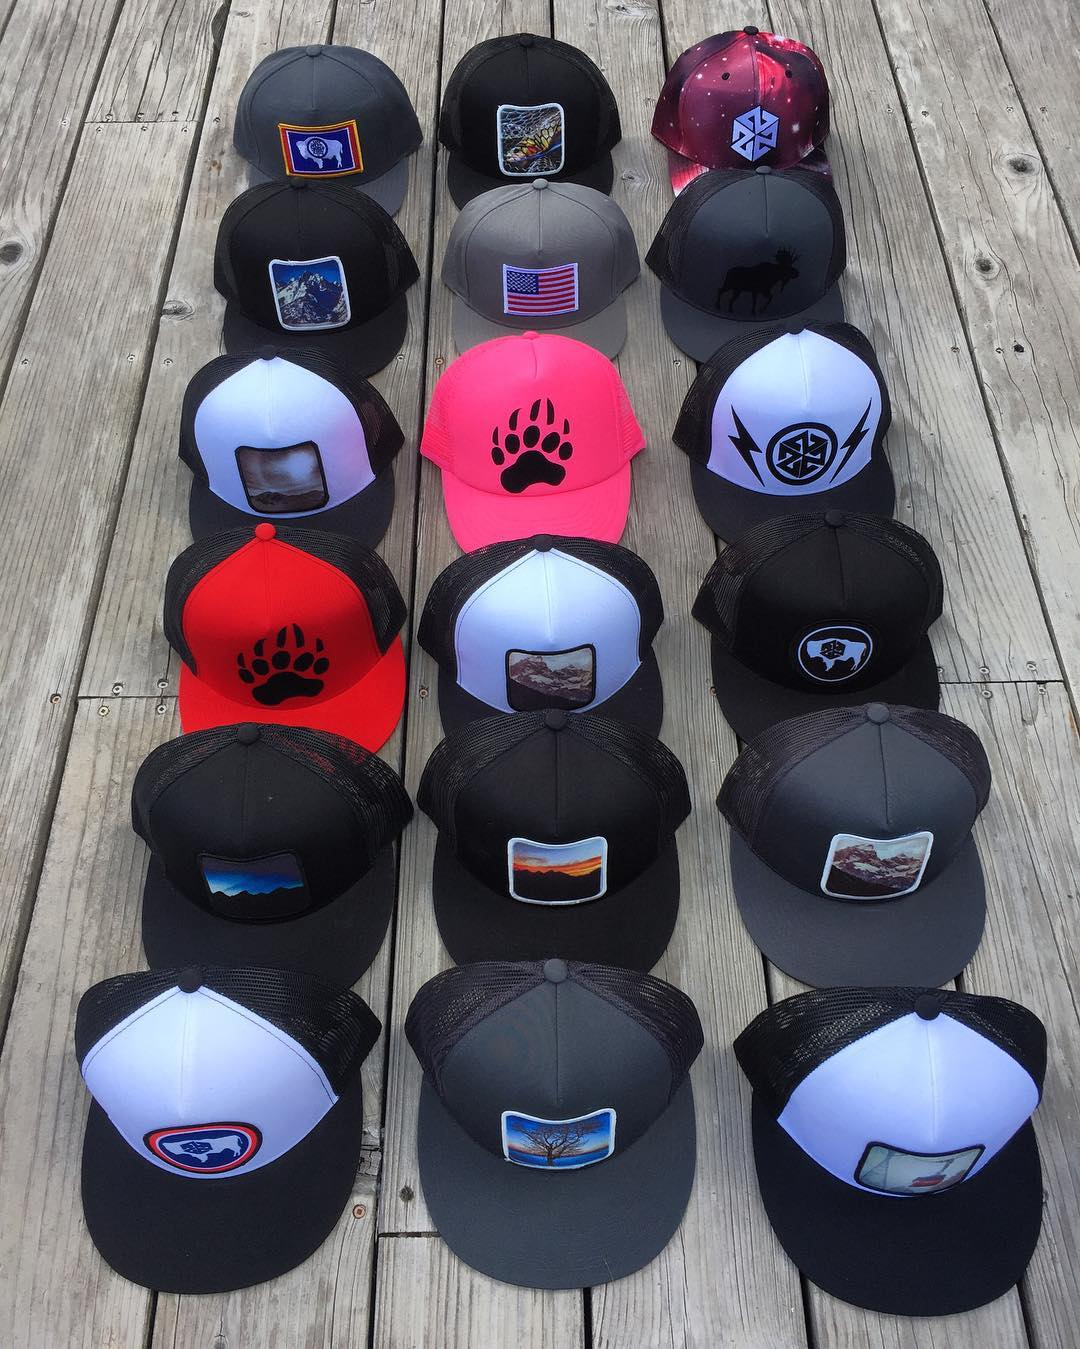 We spent Labor Day putting together some new designs for the art fair in Jackson Hole next weekend.  Handcrafted in the Tetons!  If you need a new hat or face shield click over to www.AVALON7.co and use the code liveactivated to get 20% off today! ...